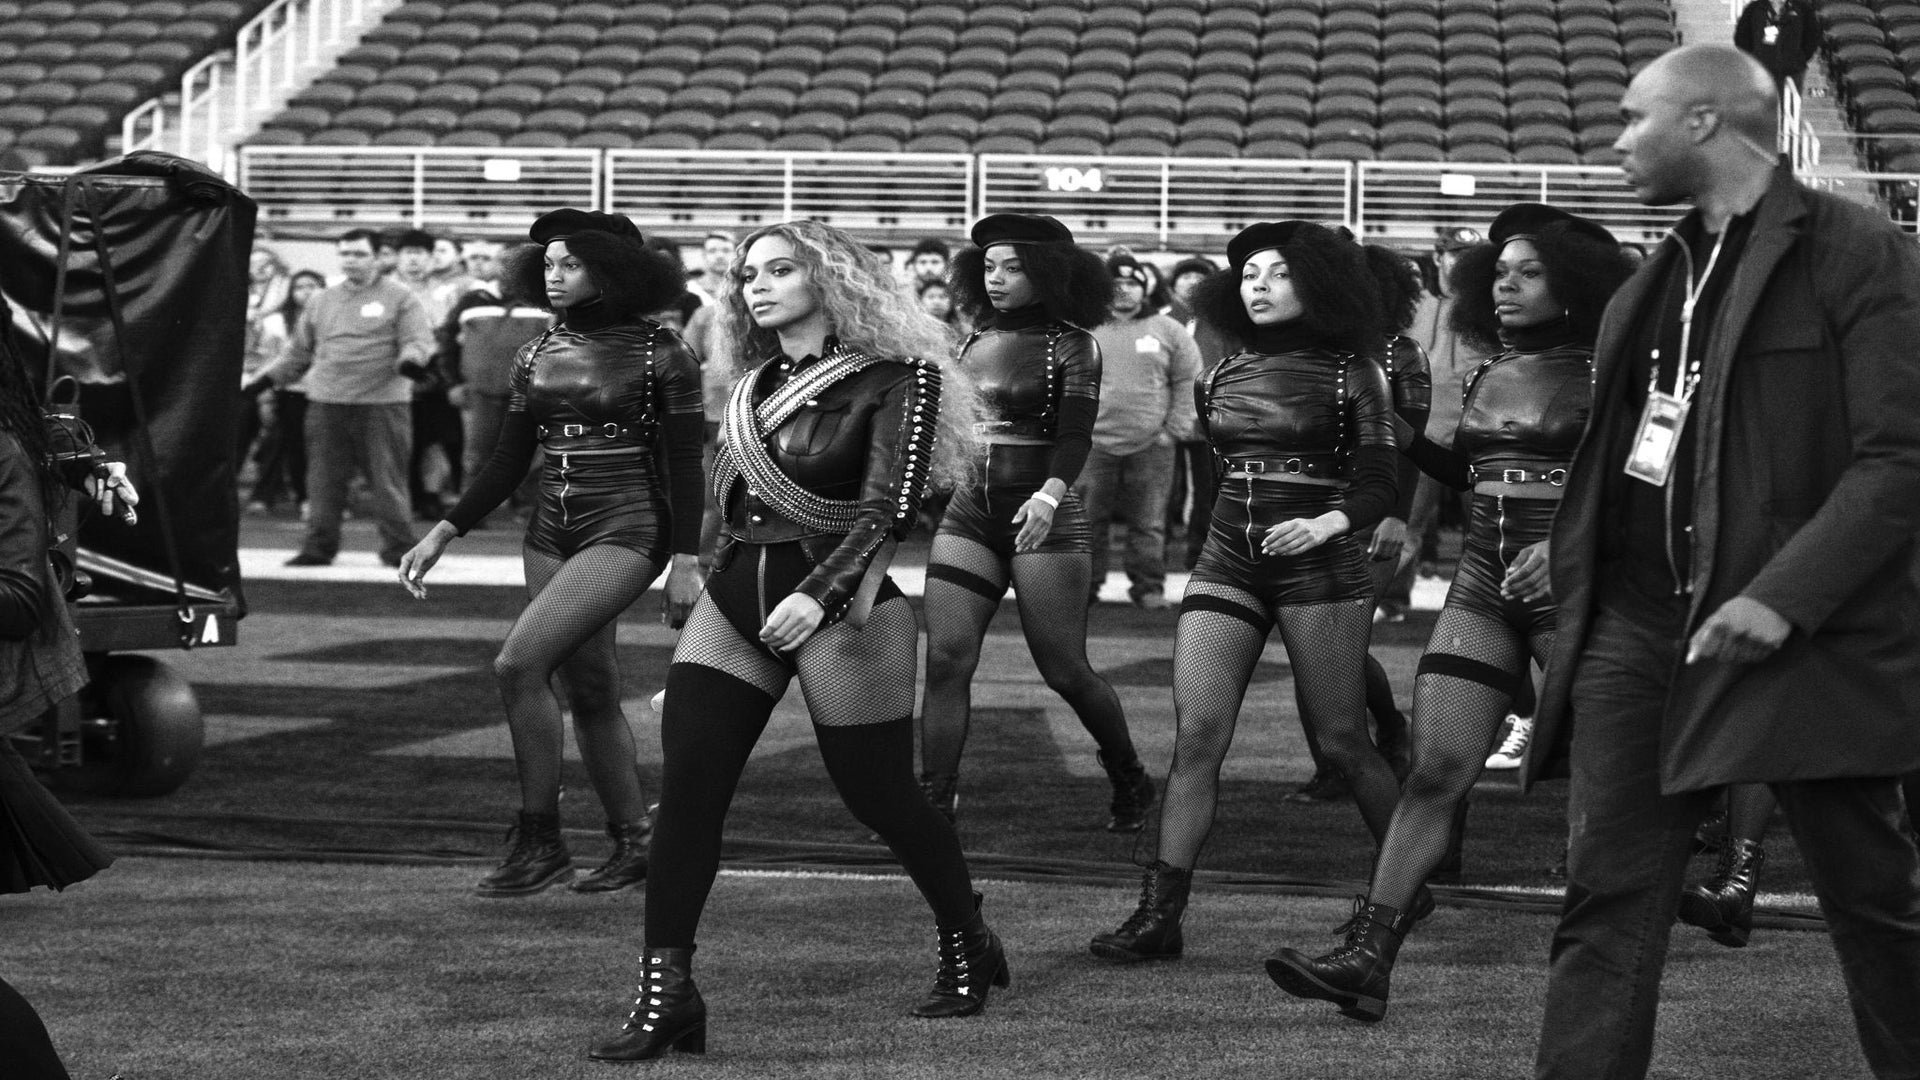 Tennessee Sheriff Blames Beyoncé for Drive-by Shooting